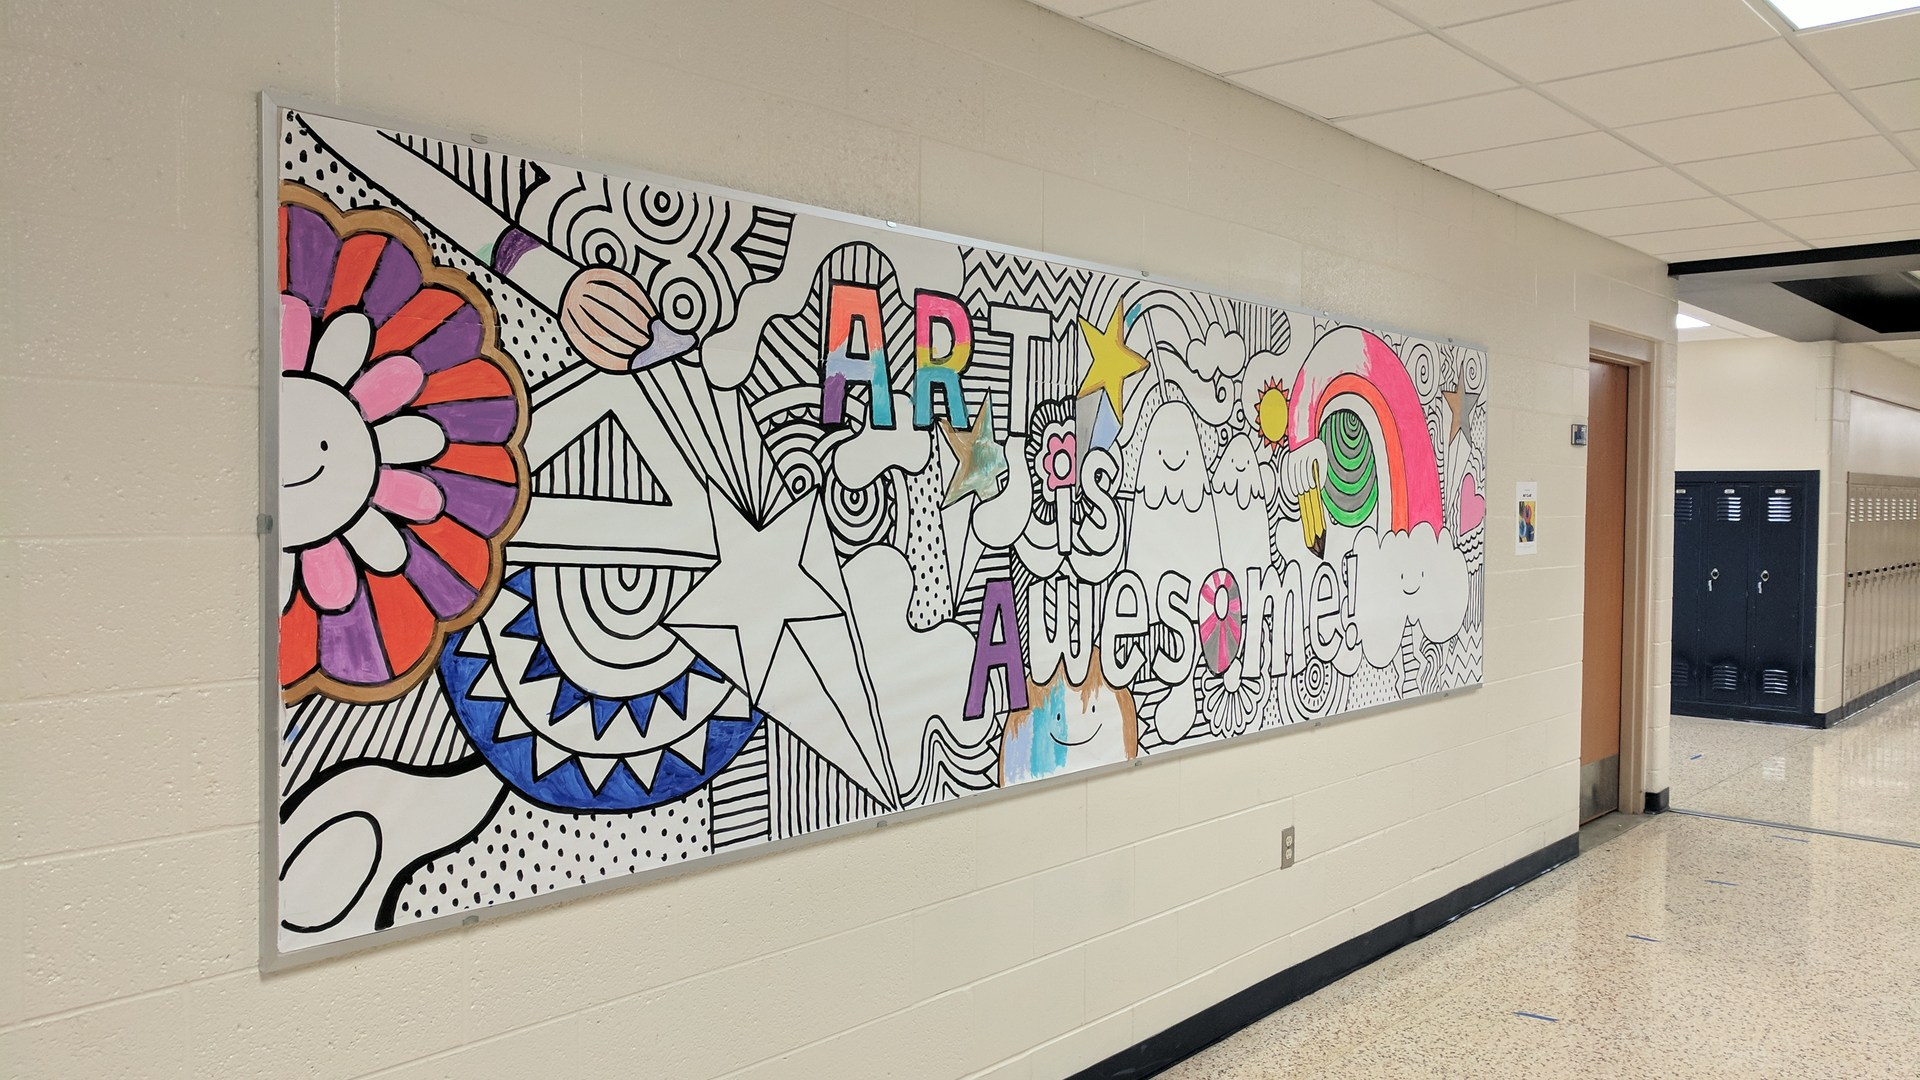 A little more is painted on the 'Art is Awesome' picture outside the art room.